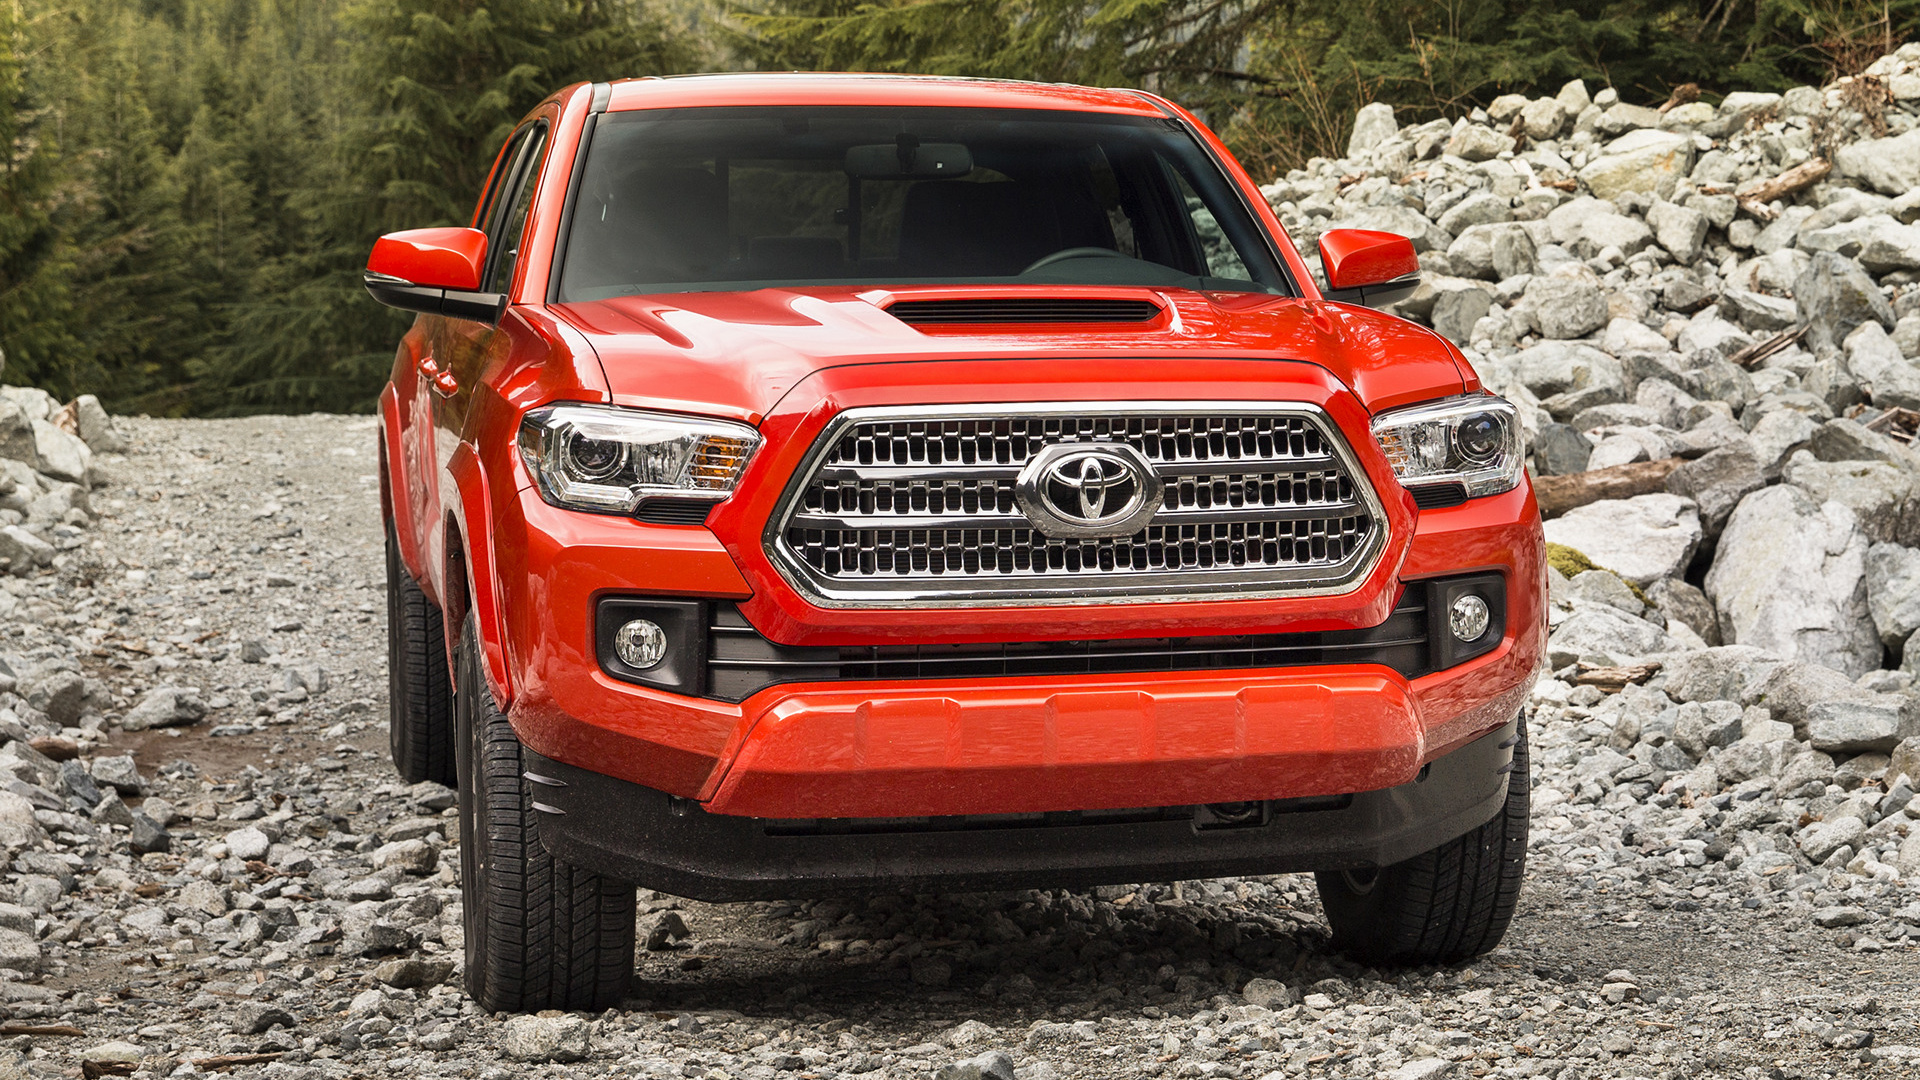 Toyota tacoma trd sport double cab 2016 wallpapers and hd images hd 169 voltagebd Choice Image